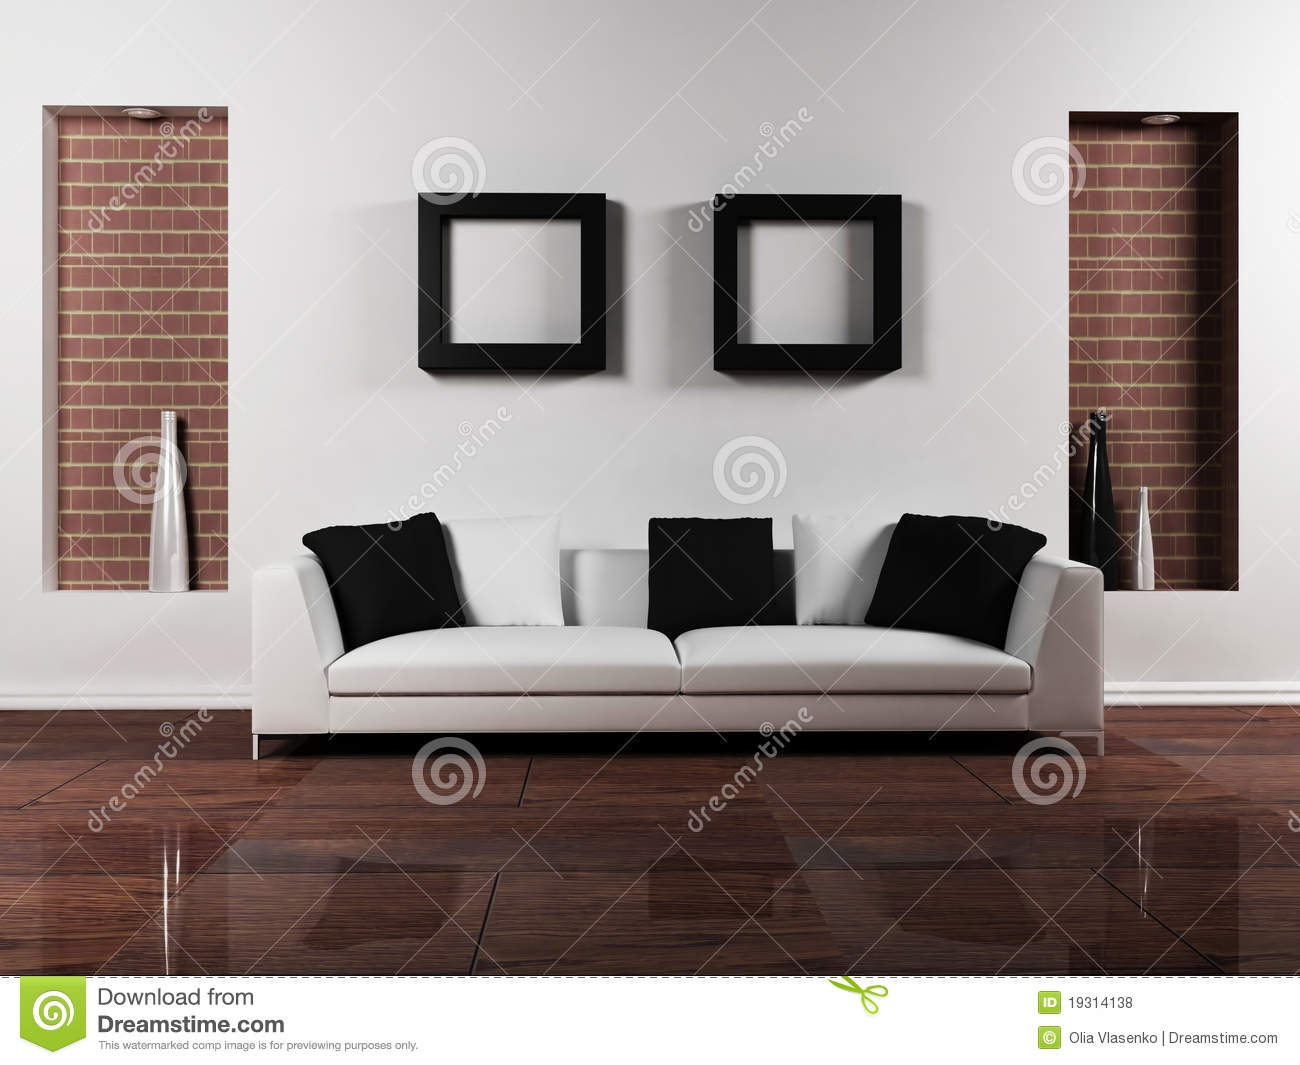 Modern interior design of living room royalty free stock for Drawing room designs interior